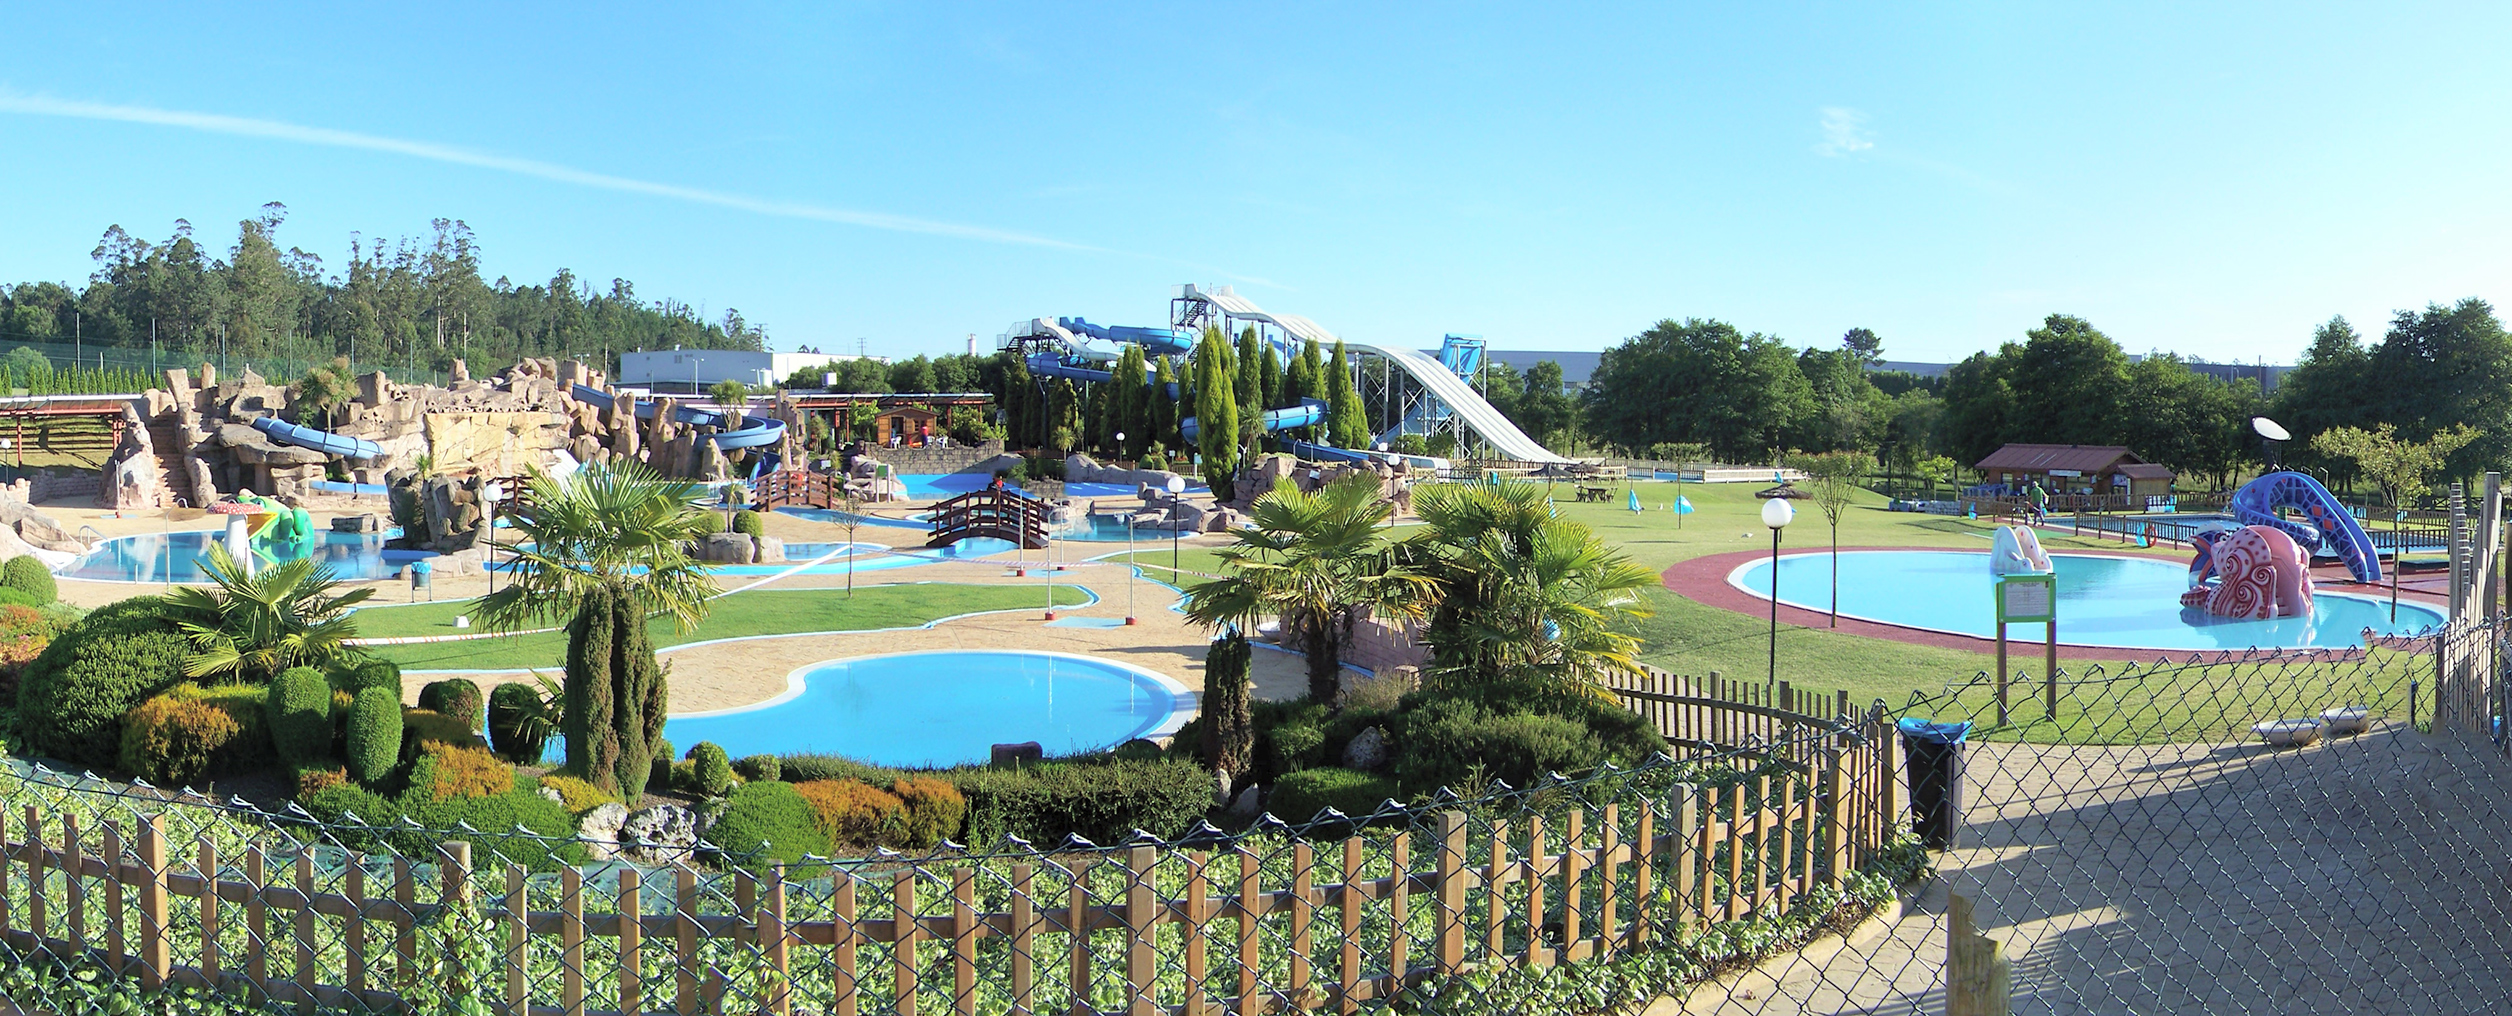 ©-rabadaun-Fresh-weekend10-waterpark